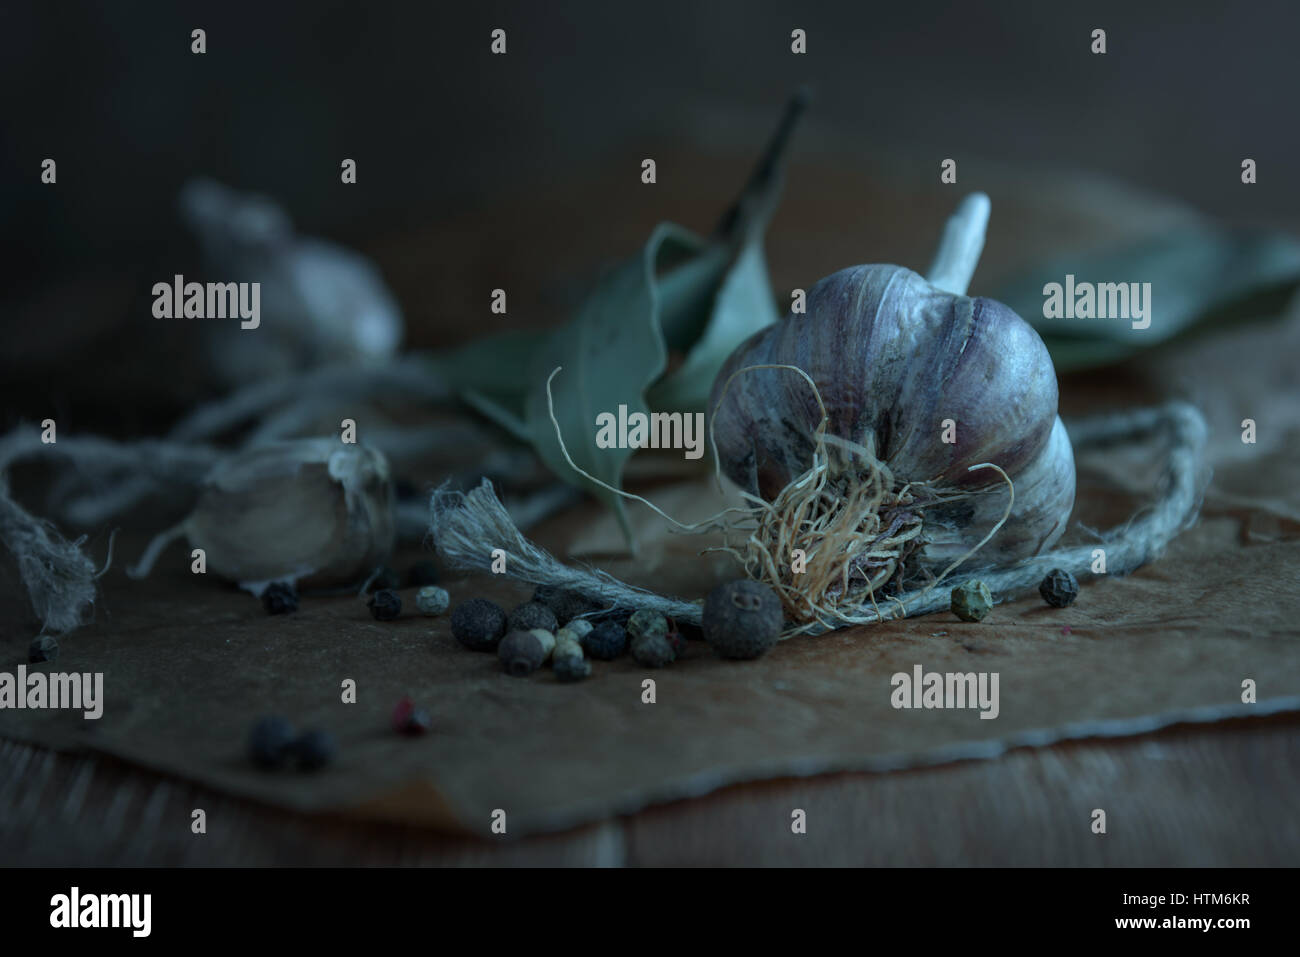 head garlic, scattered pepper, twine on a wooden table in rustic style as a cooking concept - Stock Image